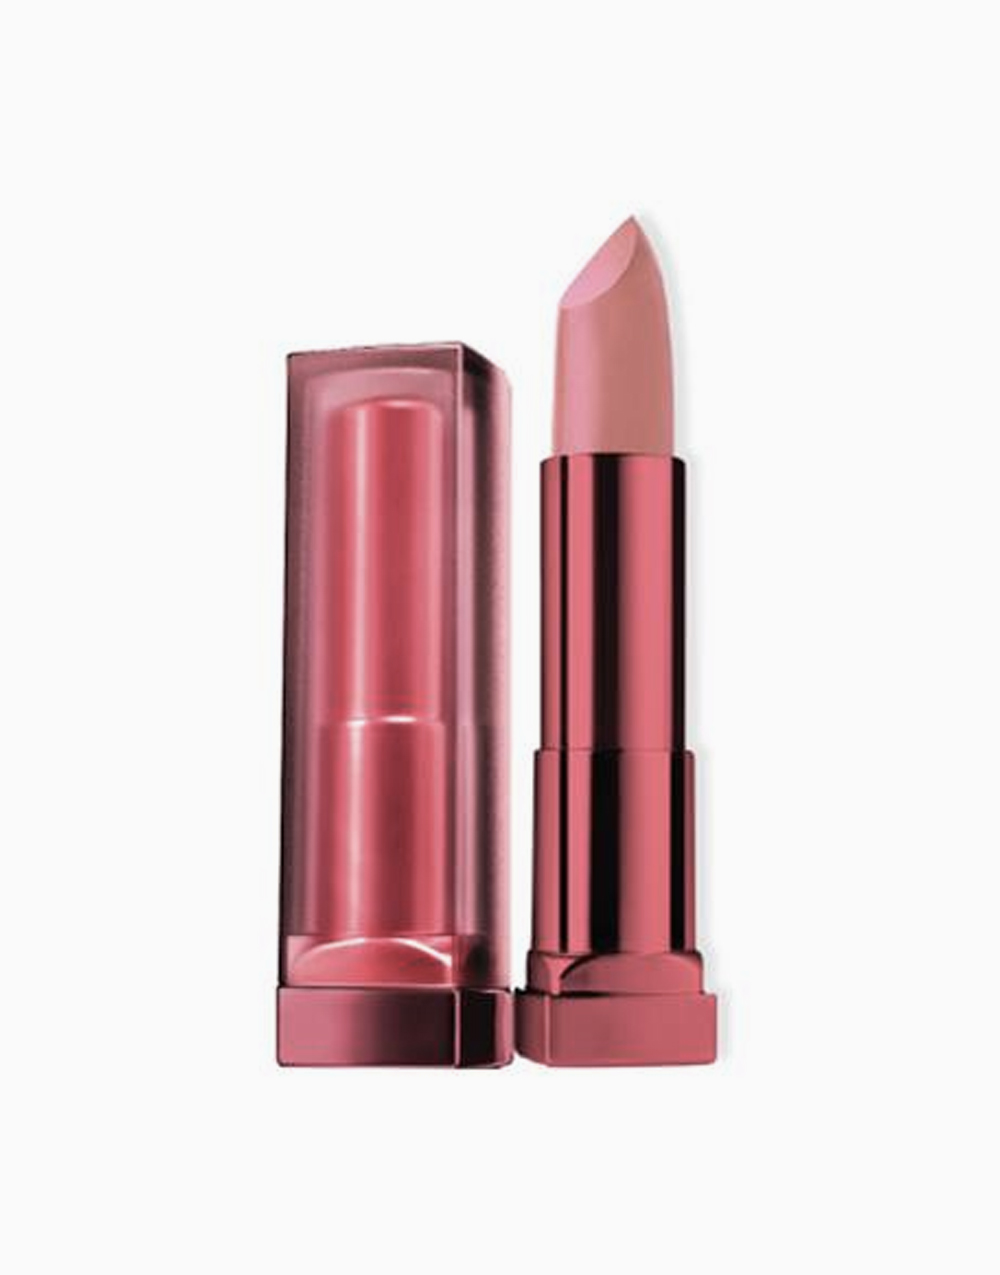 ColorSensational Rosy Mattes by Maybelline | MPK04